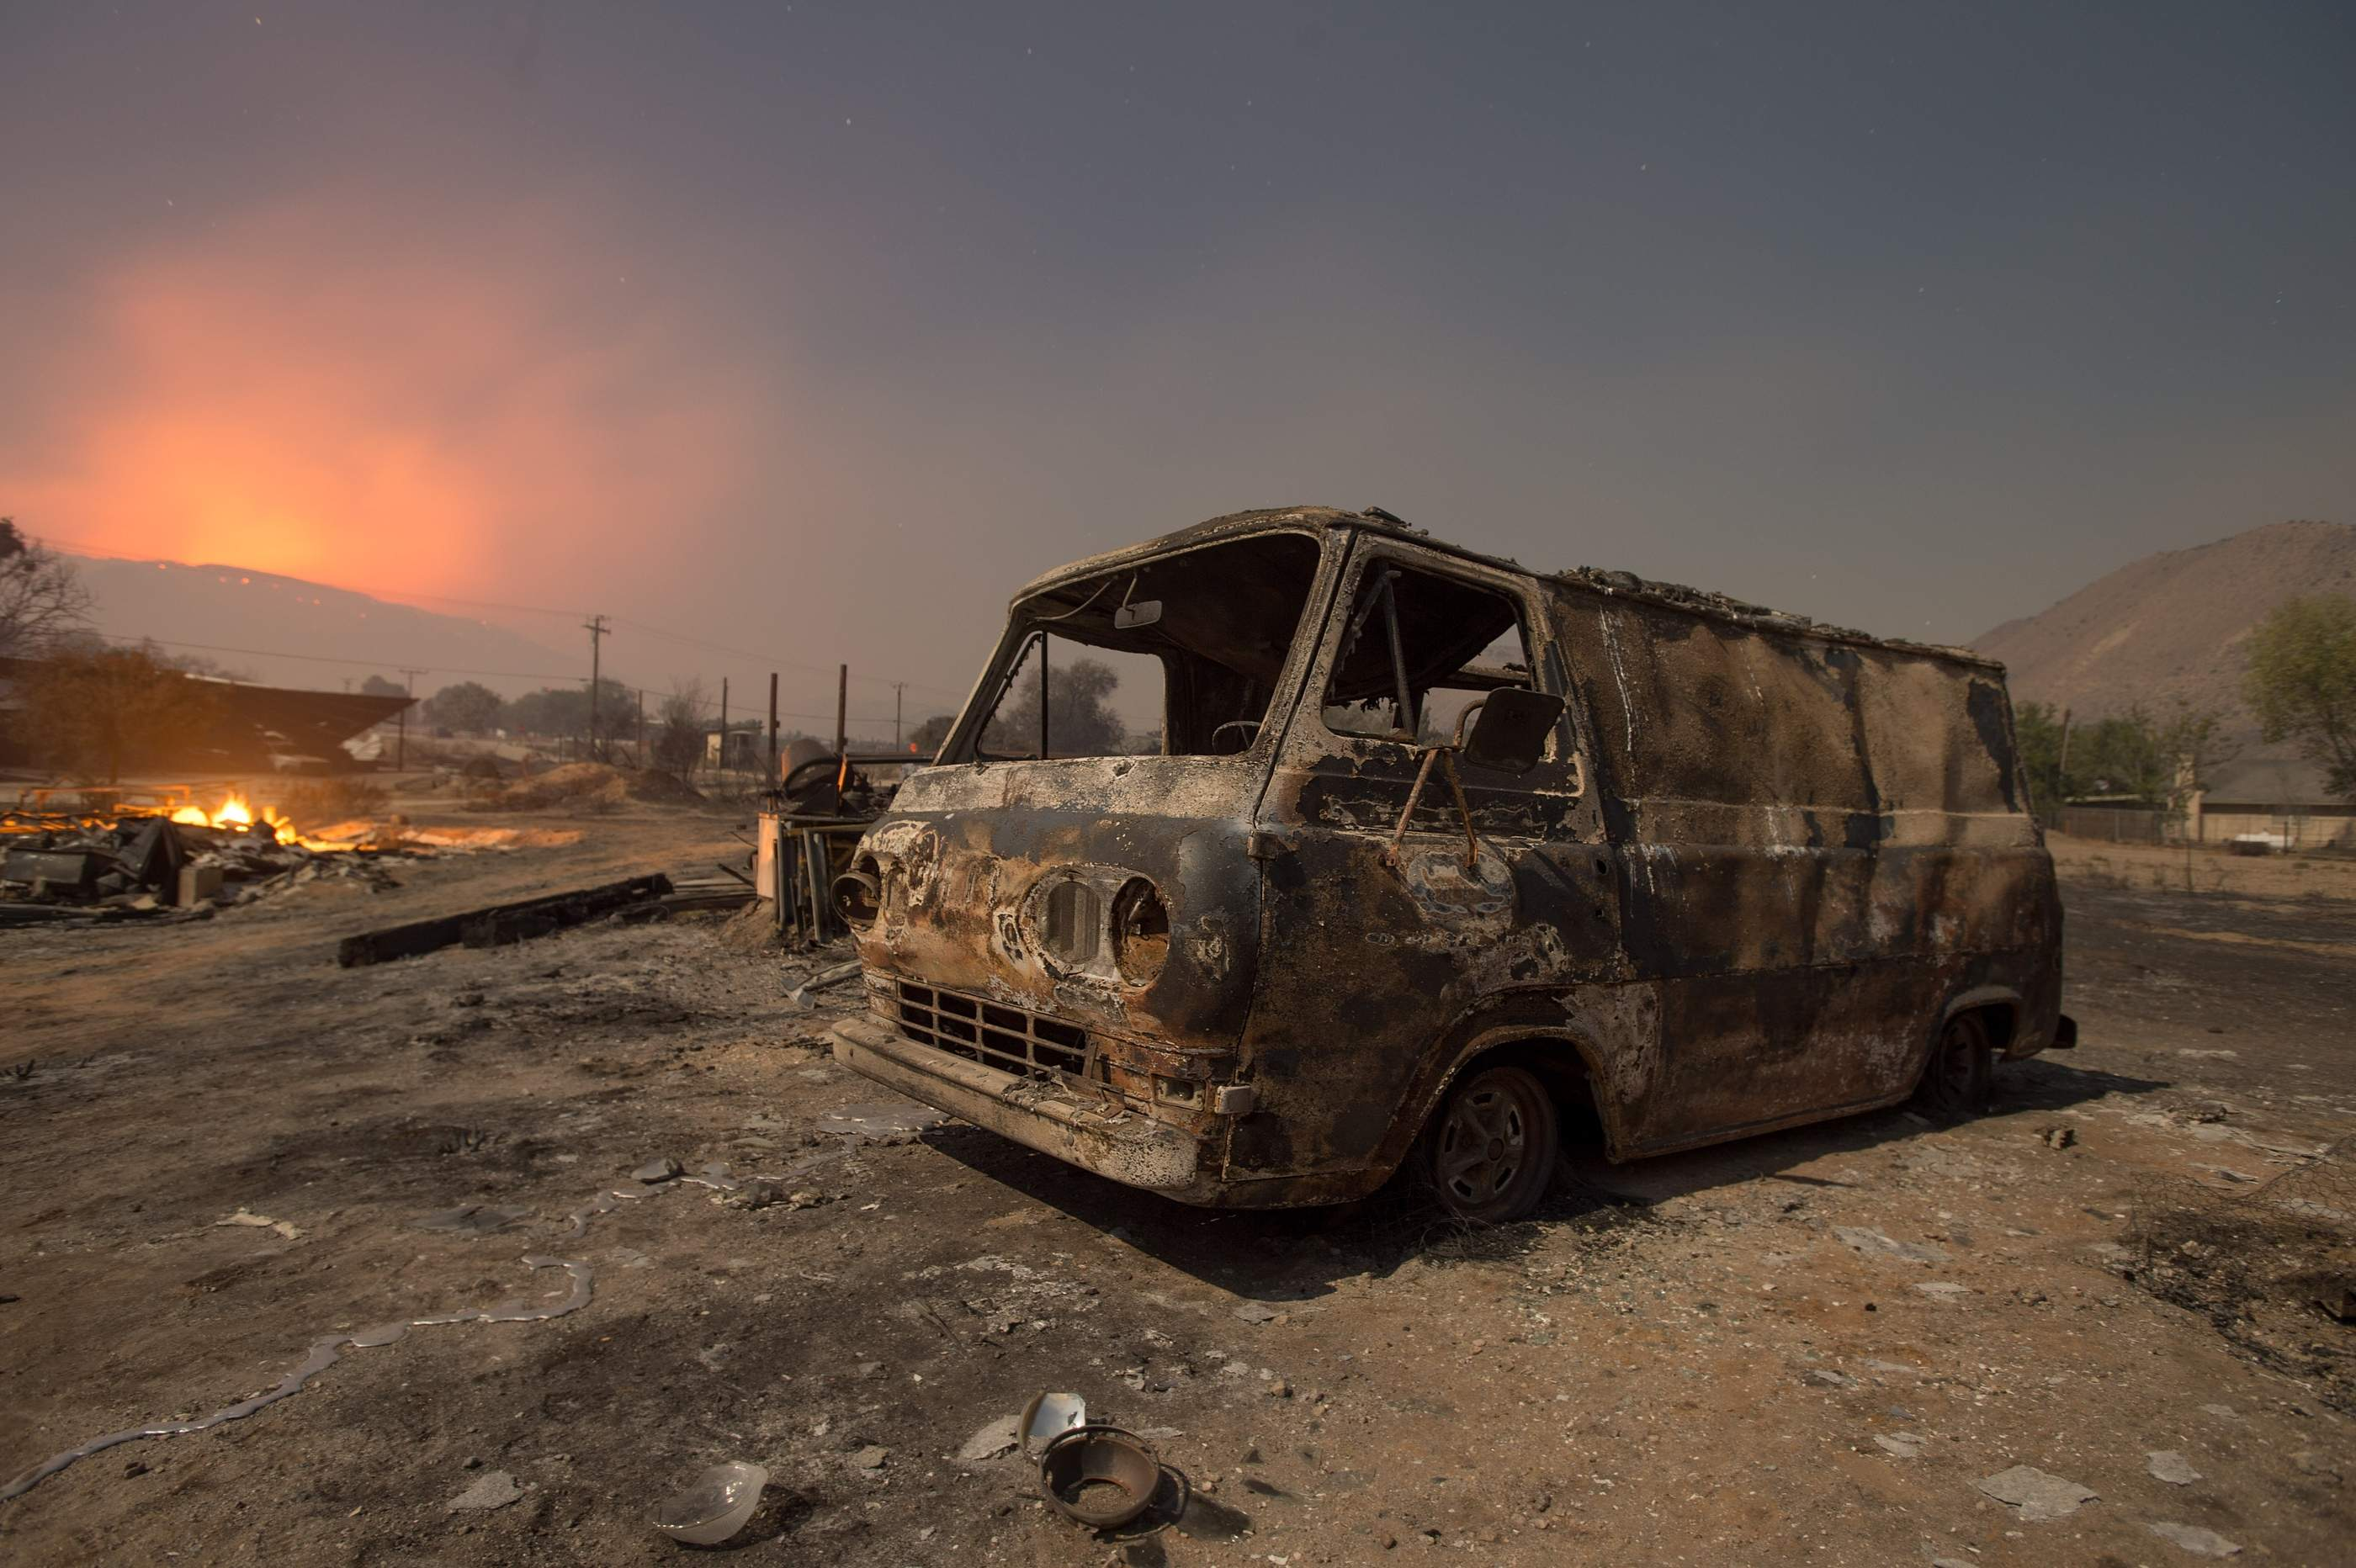 Seen in a long exposure nighttime photograph, a burned van rests in a lot while a wildfire glows on the horizon in Phelan, Calif., early Thursday, Aug. 18, 2016 2016. | AP Photo/Noah Berger; St. George News